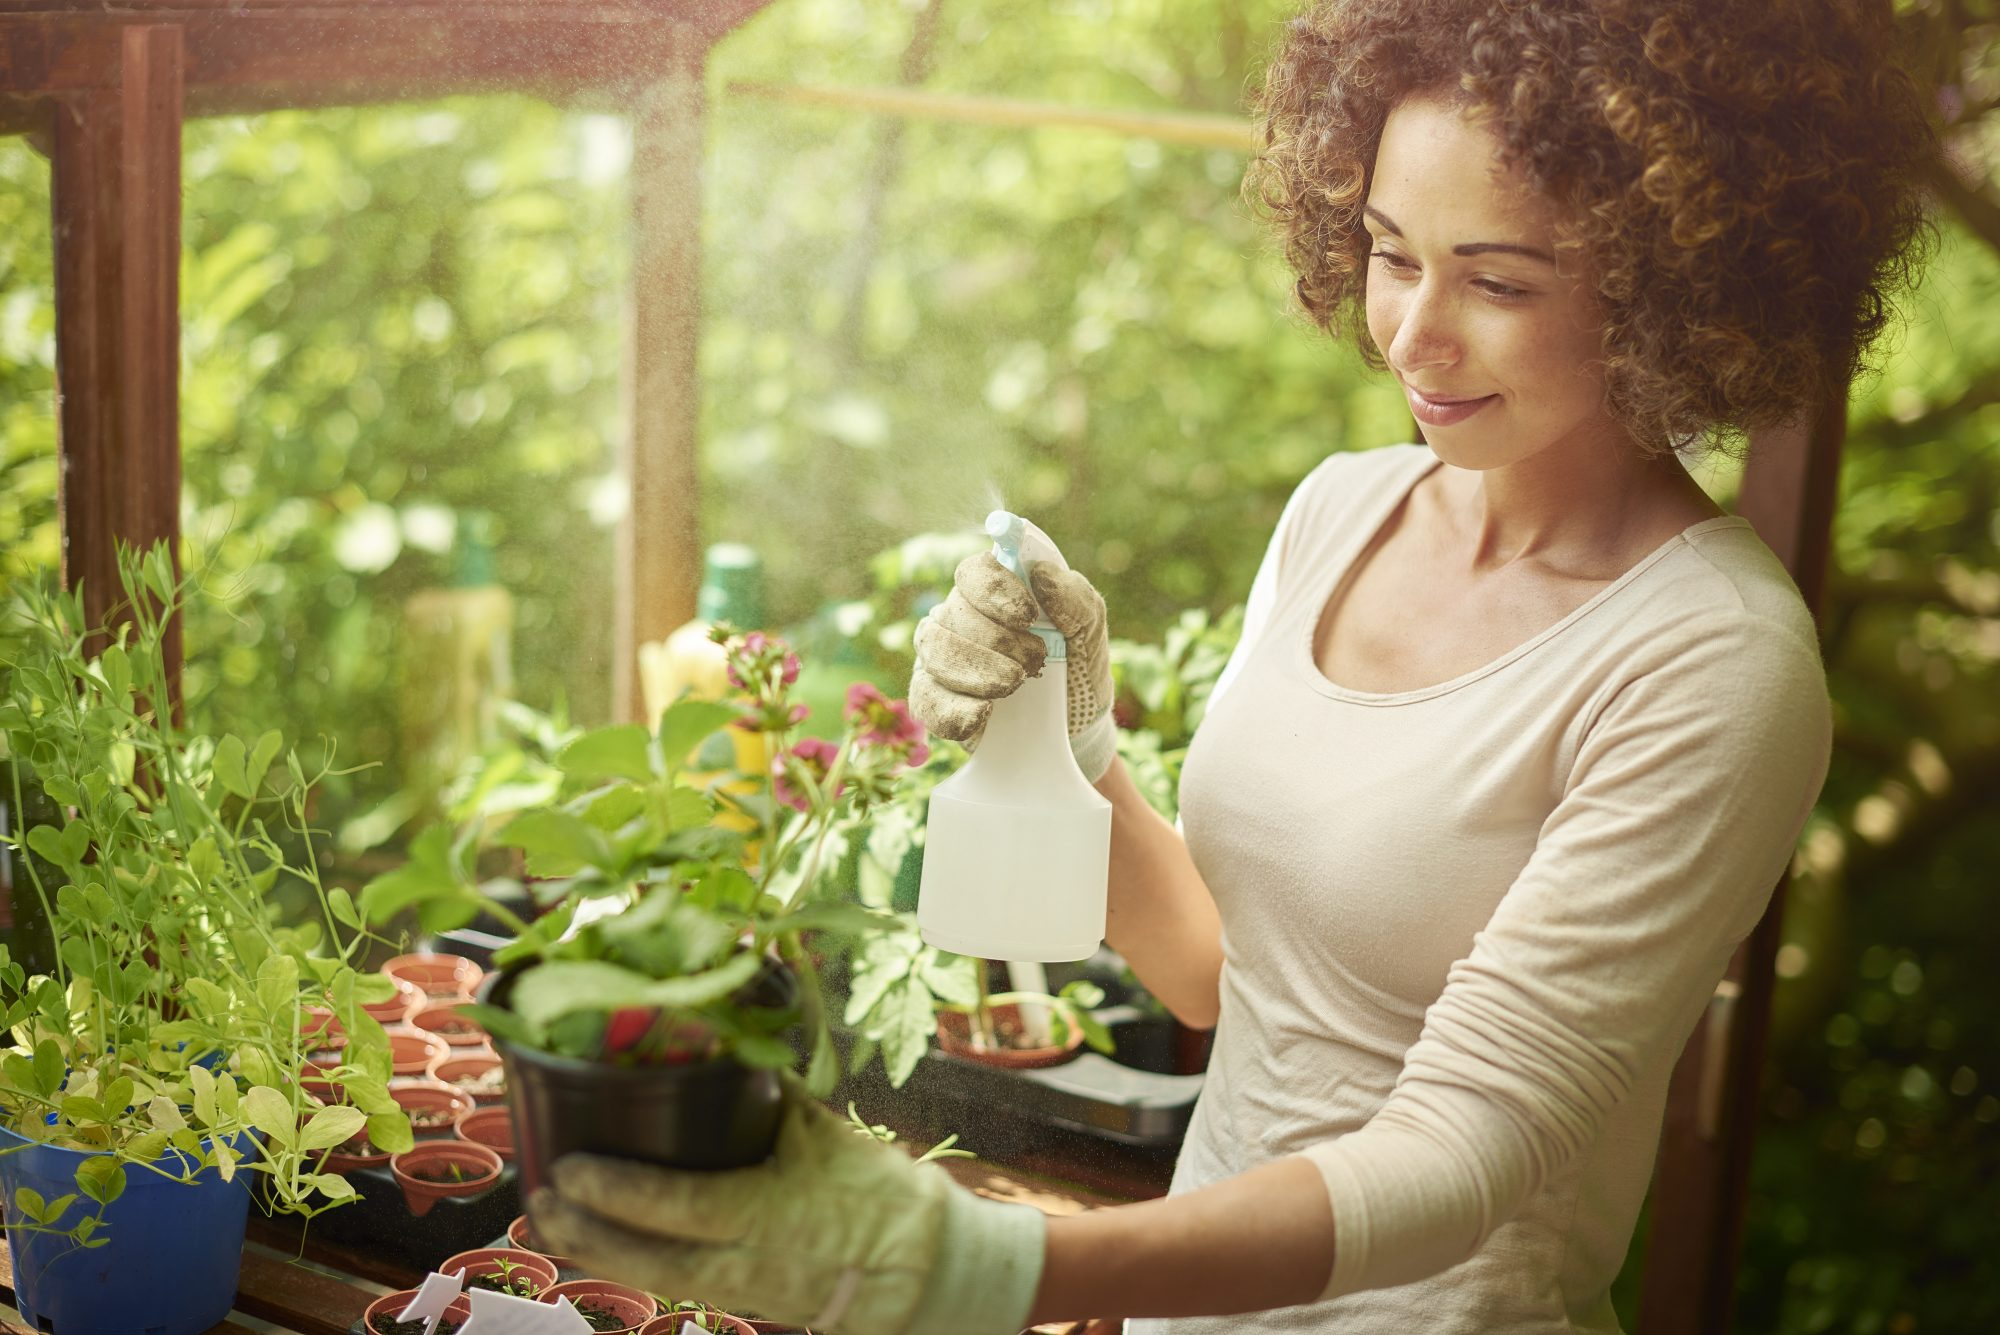 woman watering plants before planting